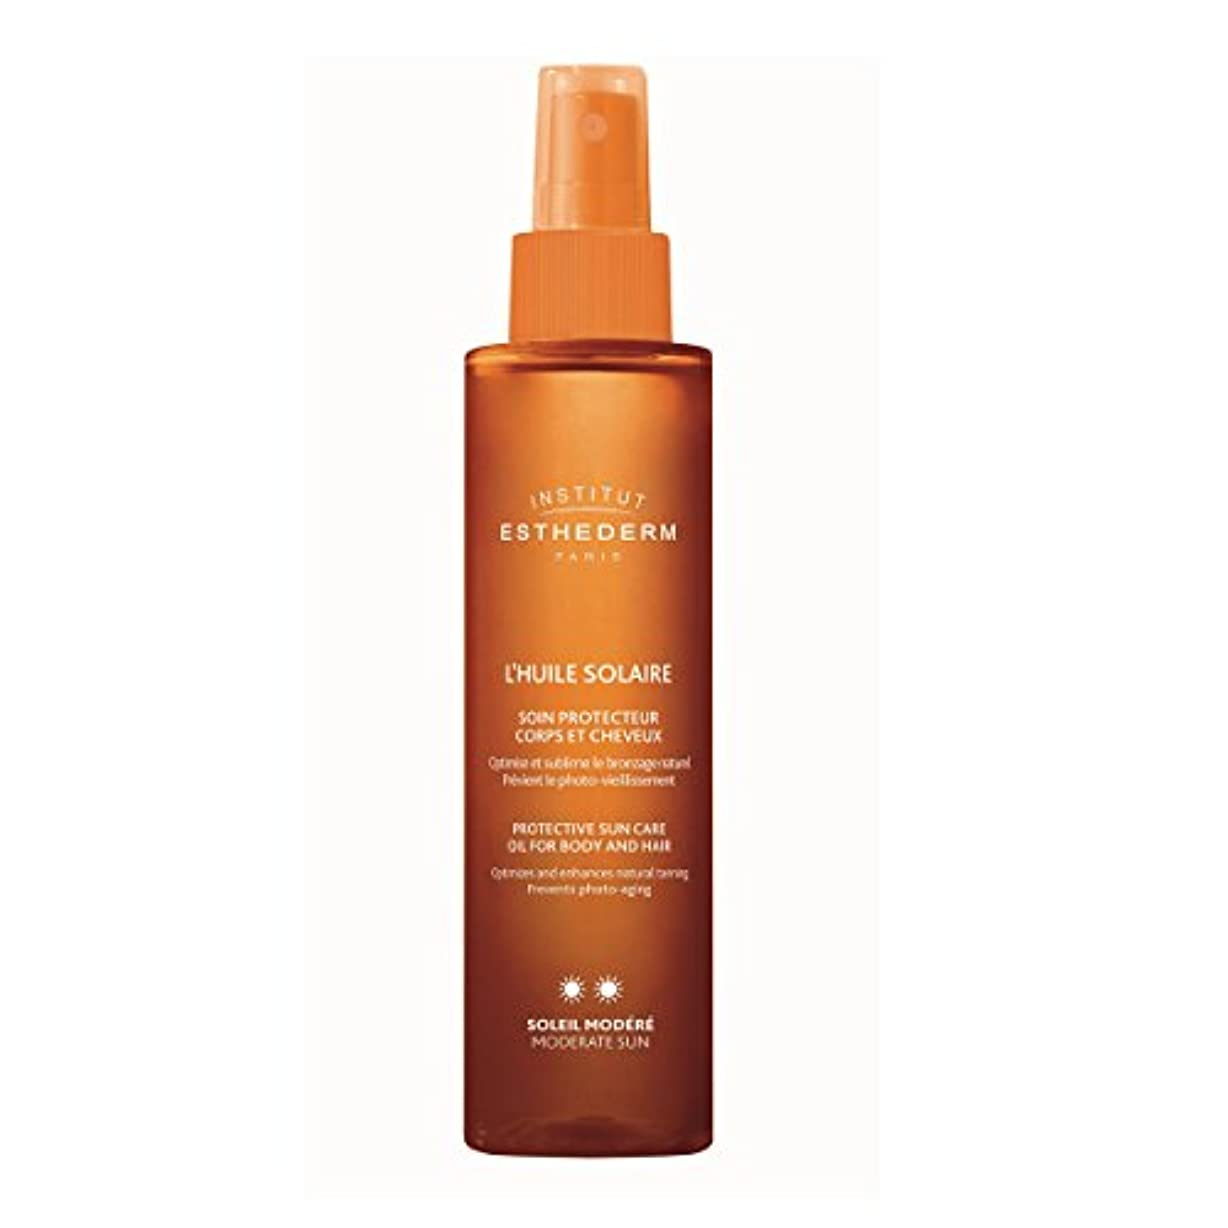 Institut Esthederm Protective Sun Care Oil For Body And Hair Moderate Sun 150ml [並行輸入品]